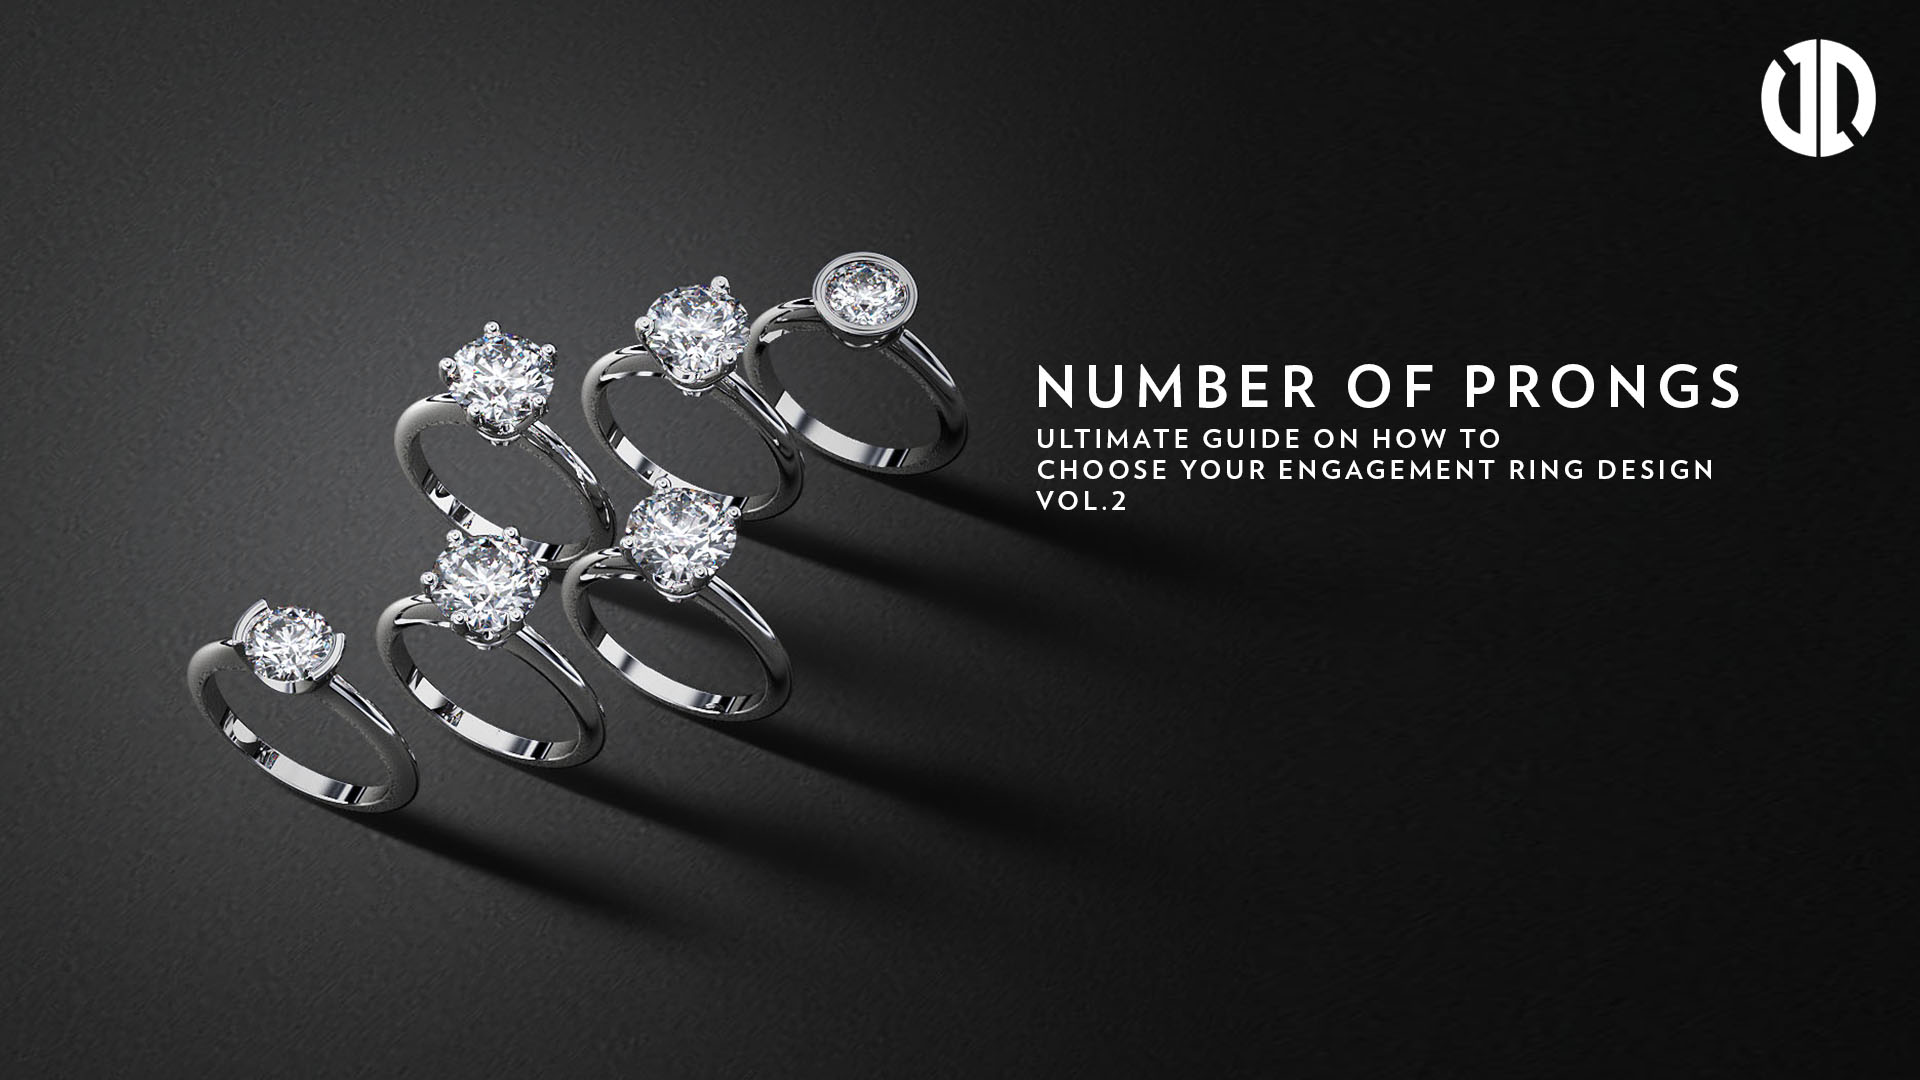 How to Choose your Engagement Ring Design (Part 2 - Number of Prongs)